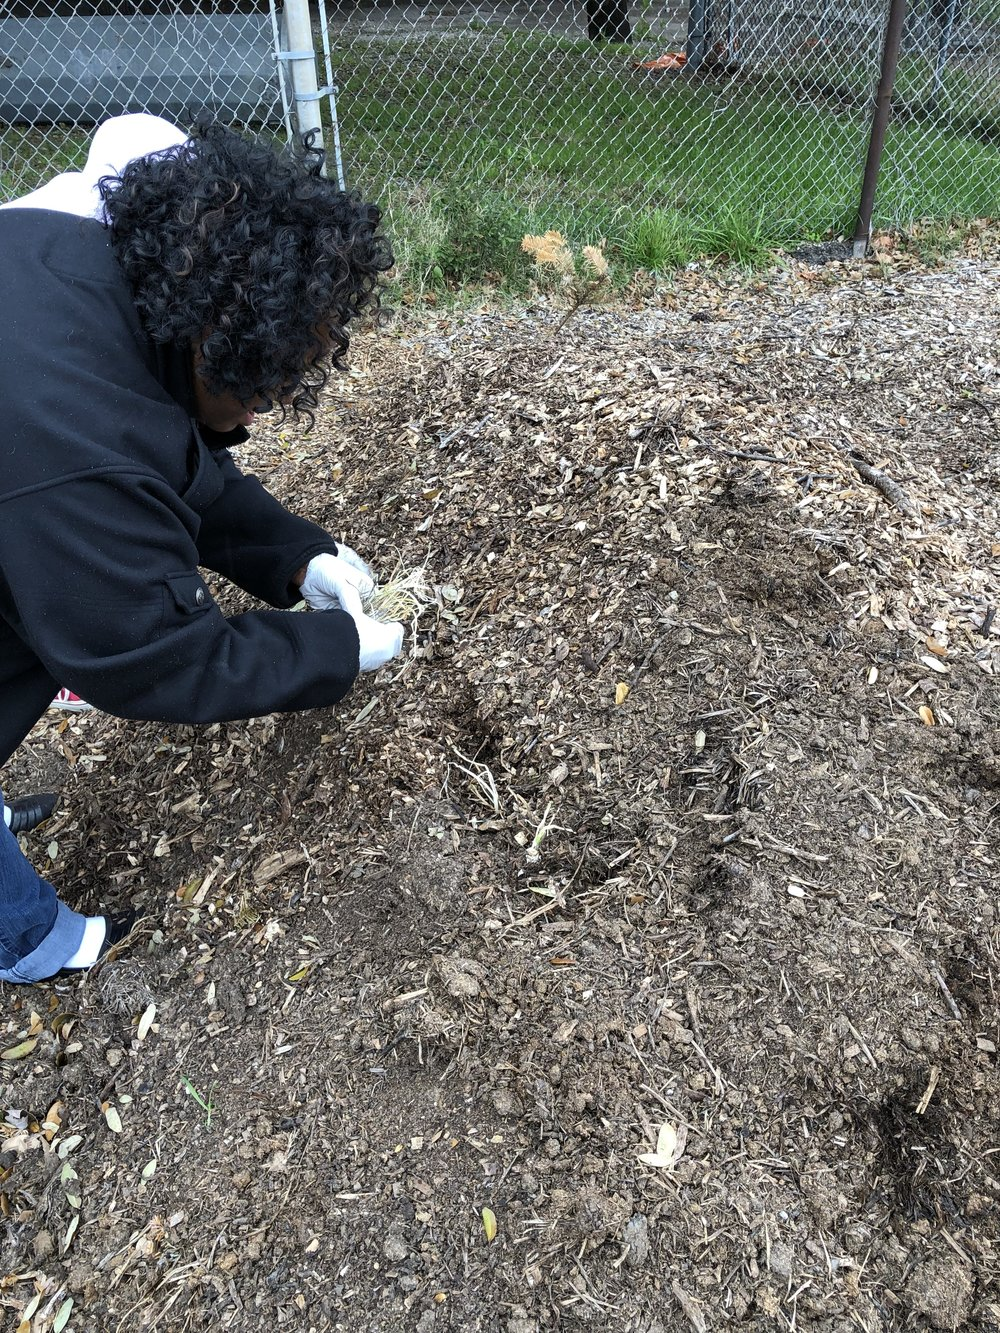 Planting onions and potatoes in a finished Hugel bed…